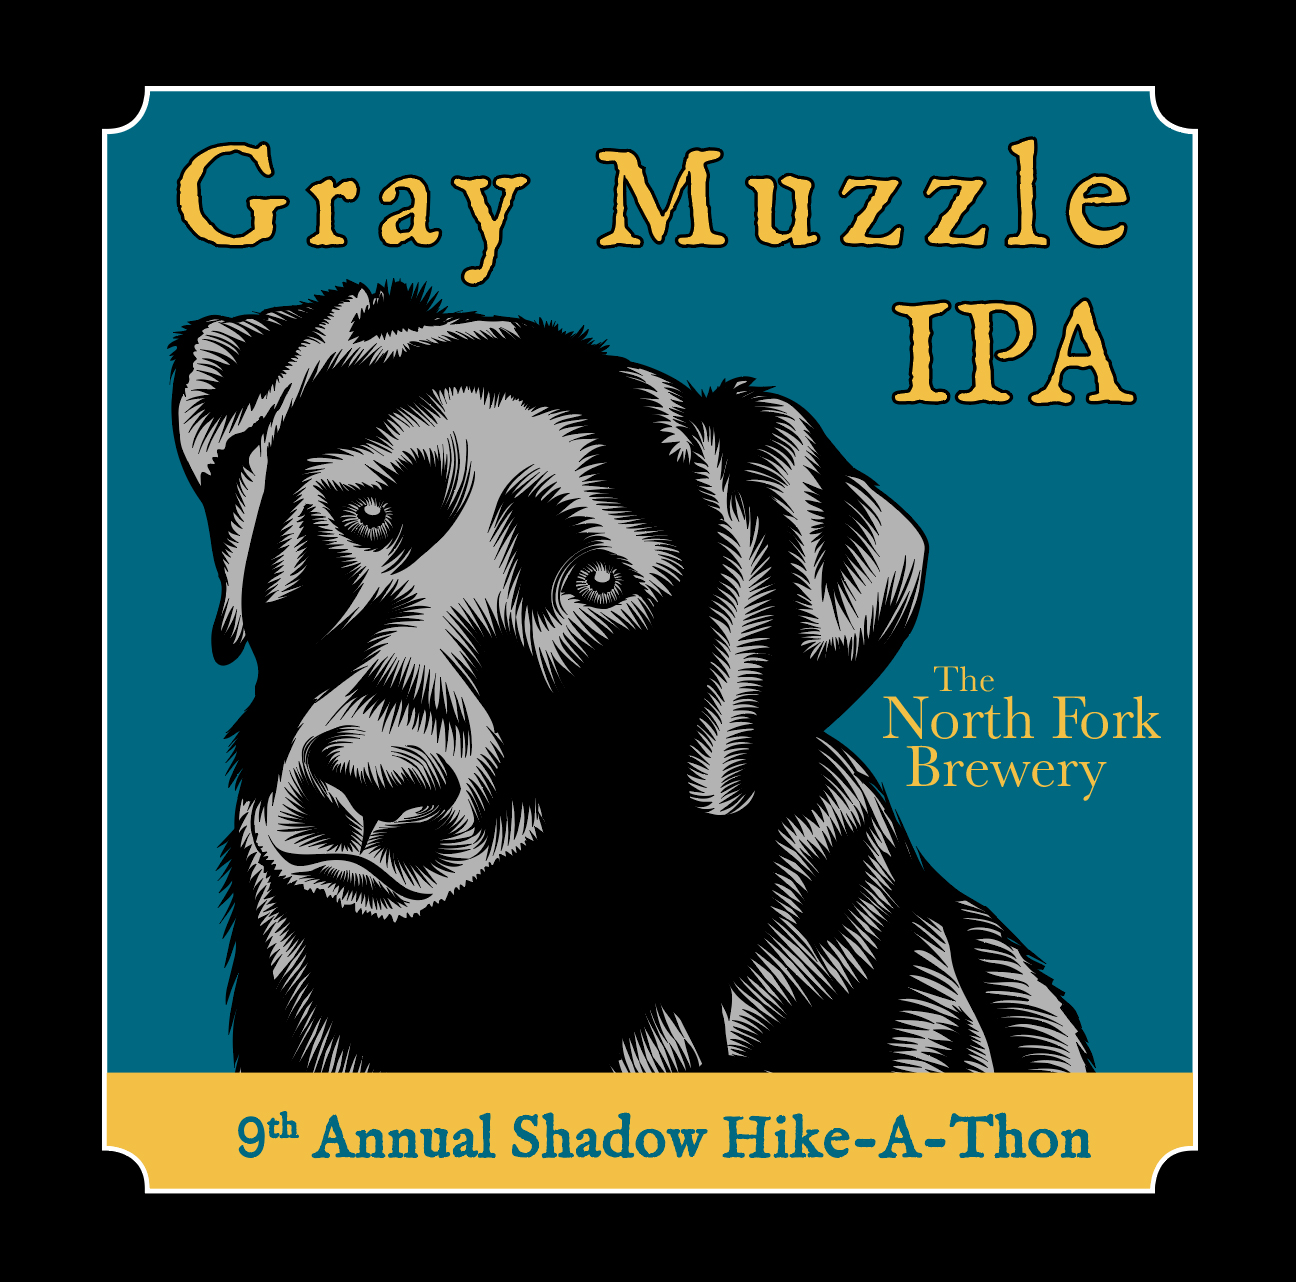 Friday, June 20th @ 5:30, Fundraiser for Old Dog Haven and the Release of Grey Muzzle IPA with Shadow Hike A Thon